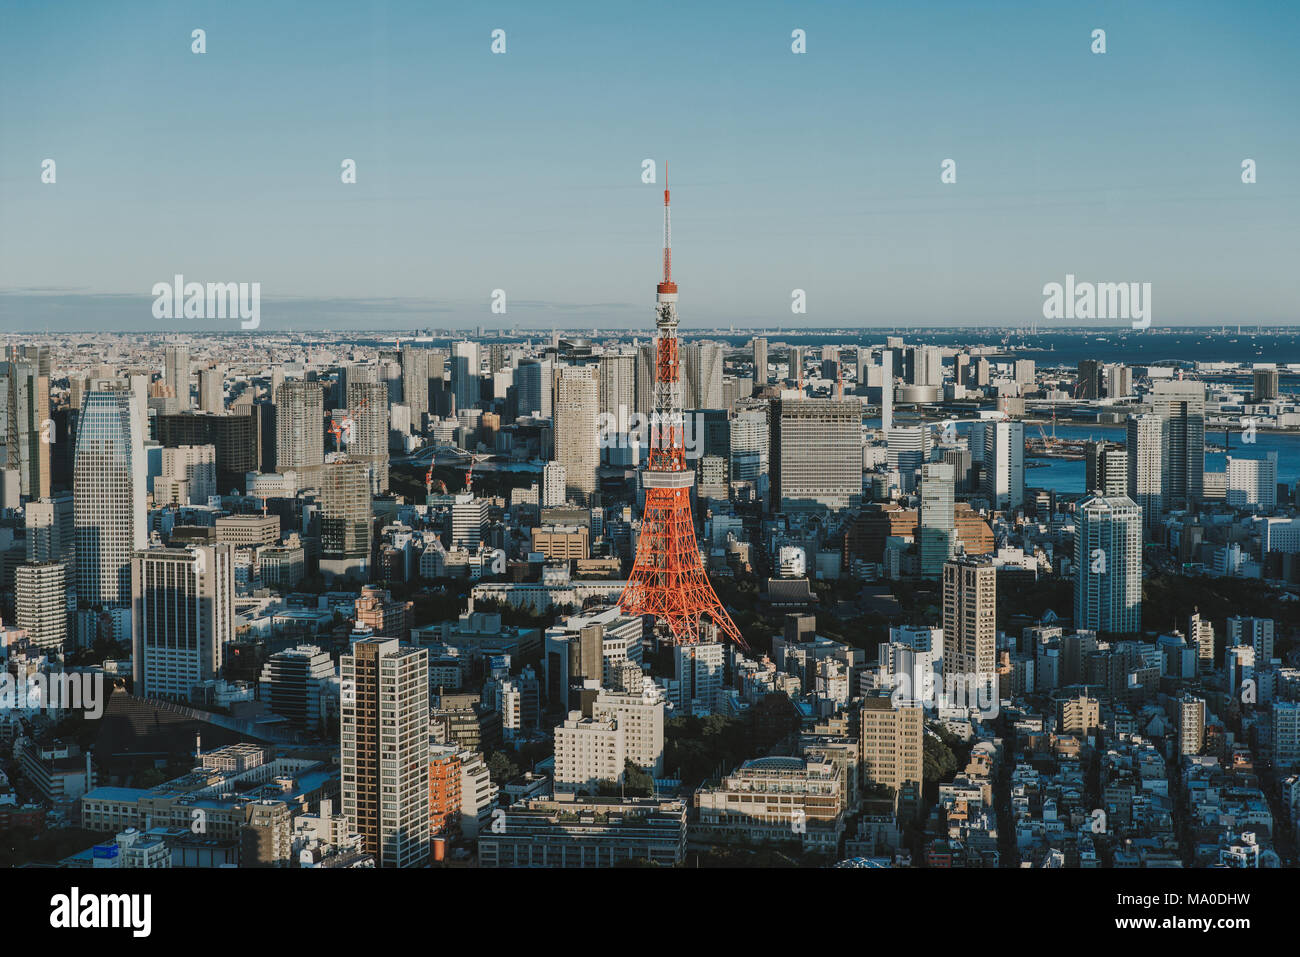 Tokyo skyline and buildings from above, view of the Tokyo tower - Stock Image